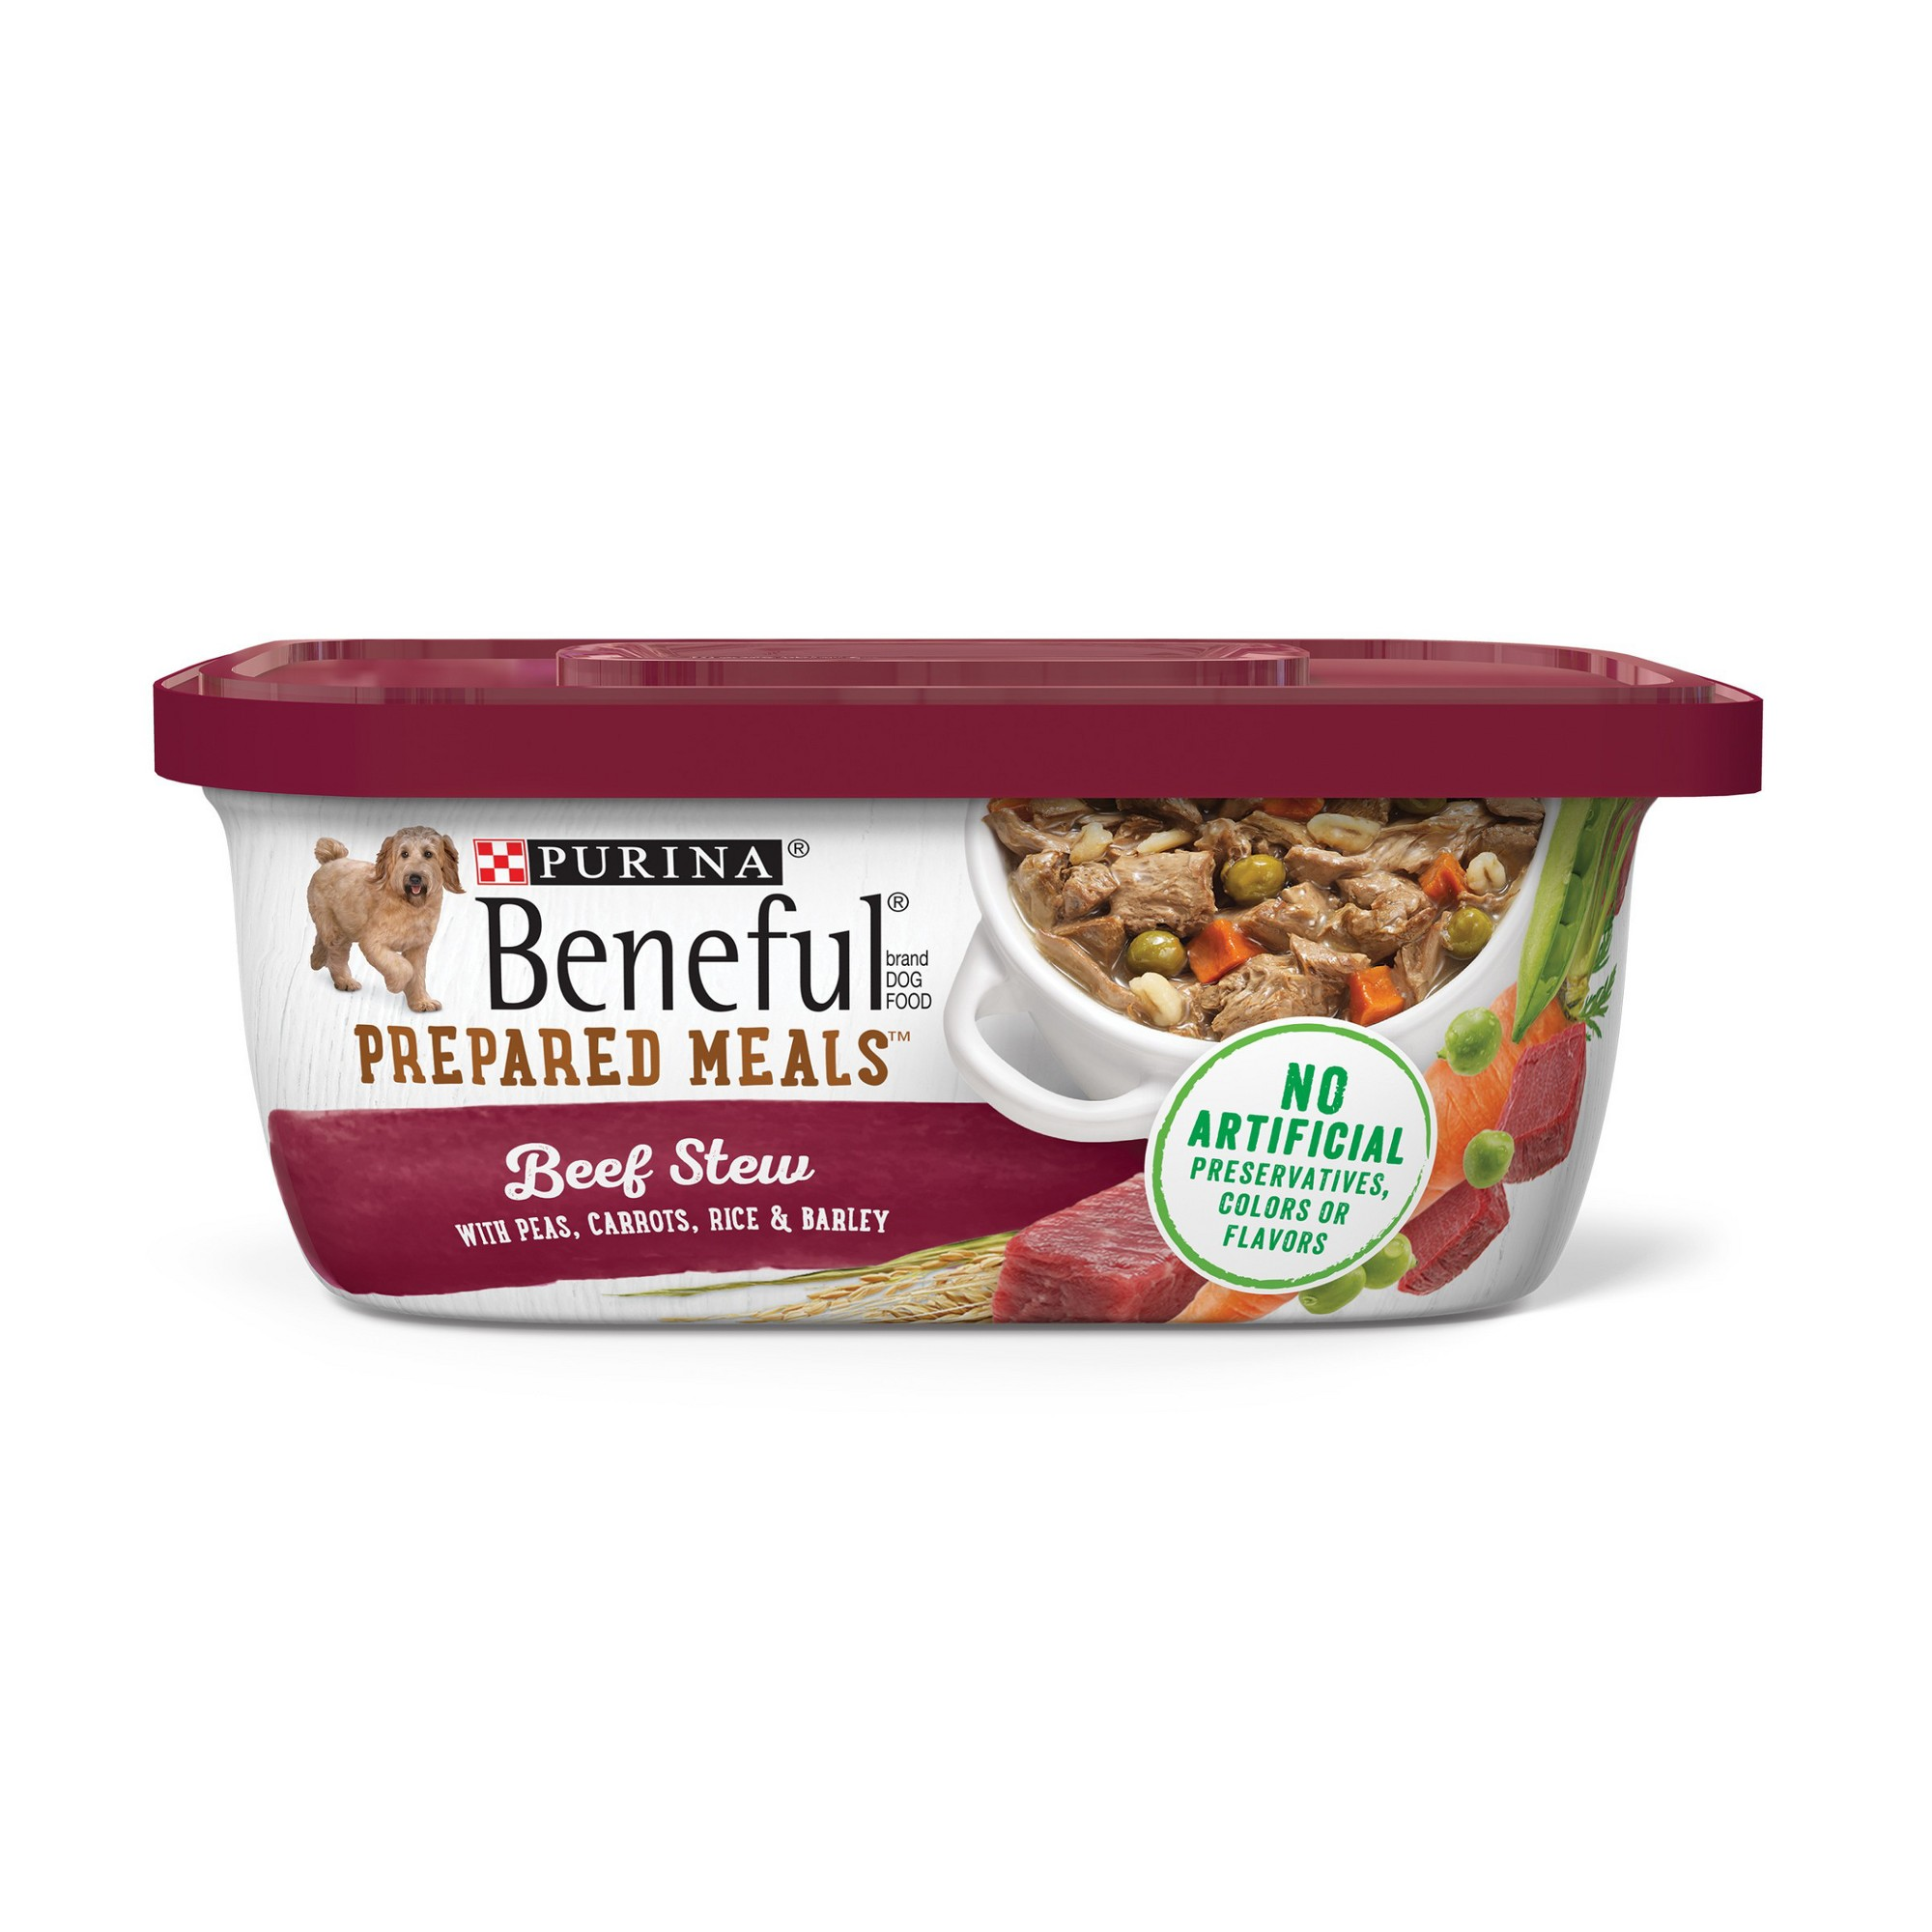 Beneful Prepared Meals Beef Stew Wet Dog Food 10oz Products In